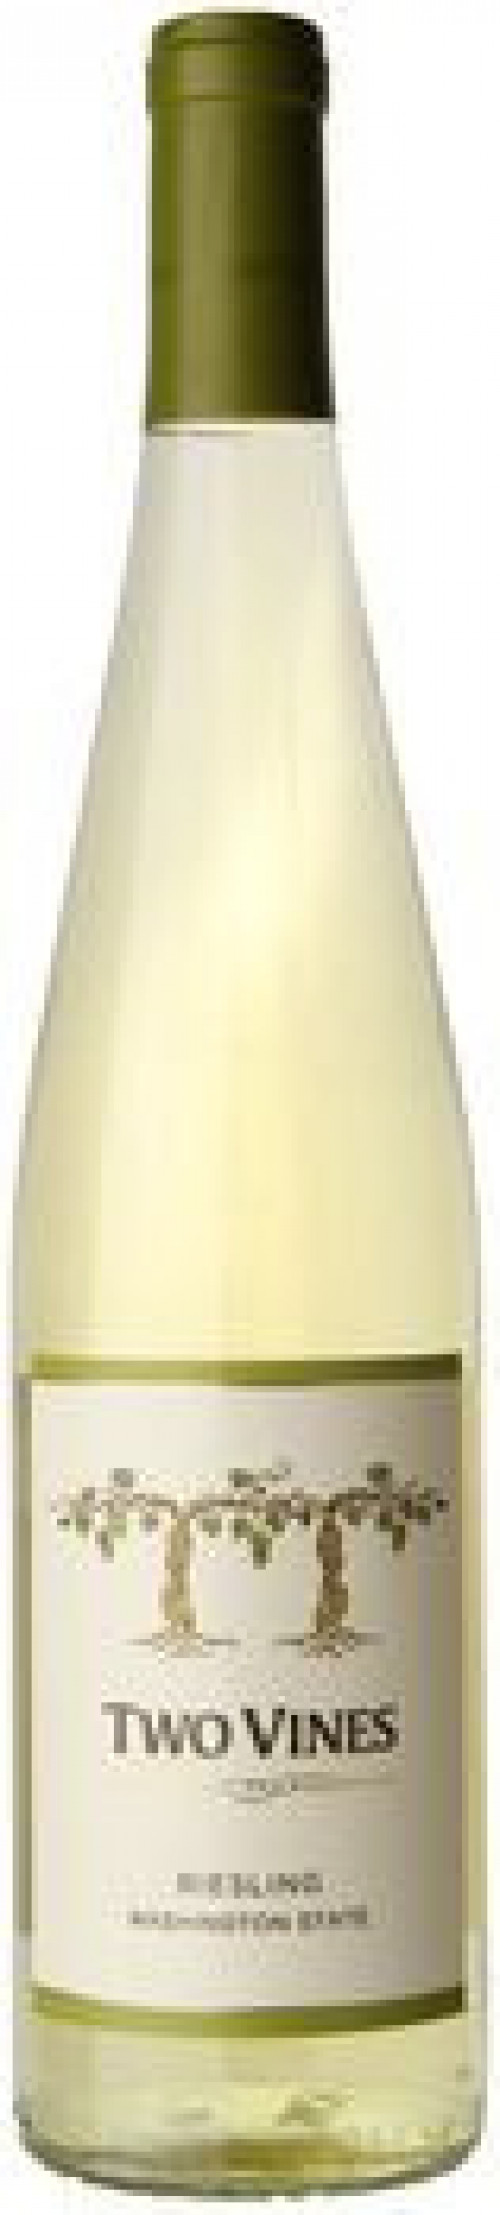 Two Vines Riesling 750ml